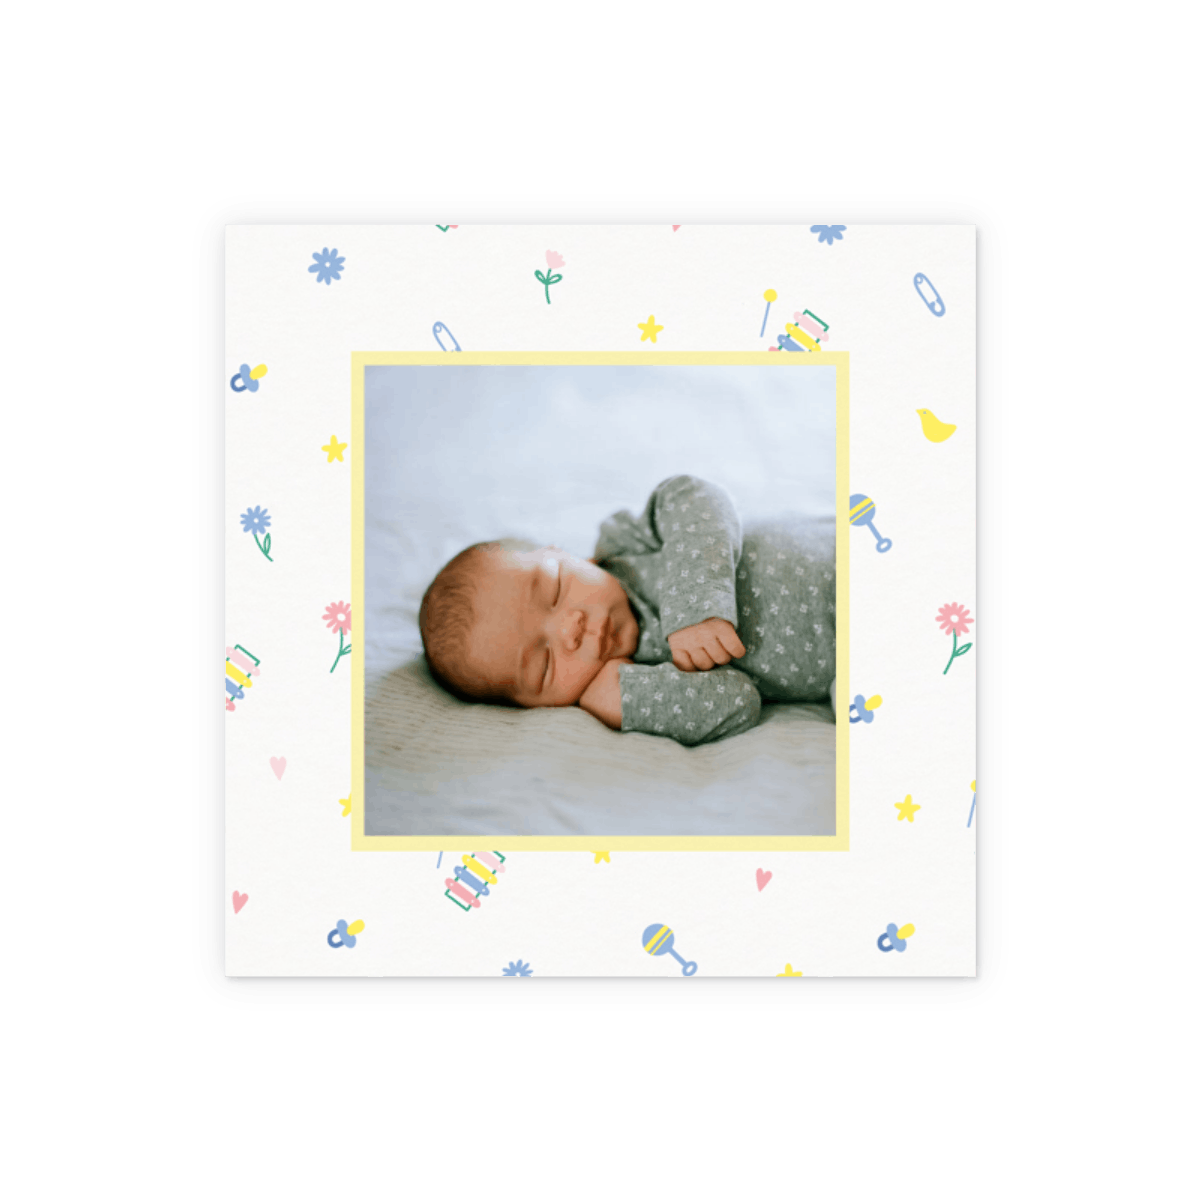 Https%3a%2f%2fwww.papier.com%2fproduct image%2f75885%2f11%2fbaby basics 17844 front 1558369738.png?ixlib=rb 1.1